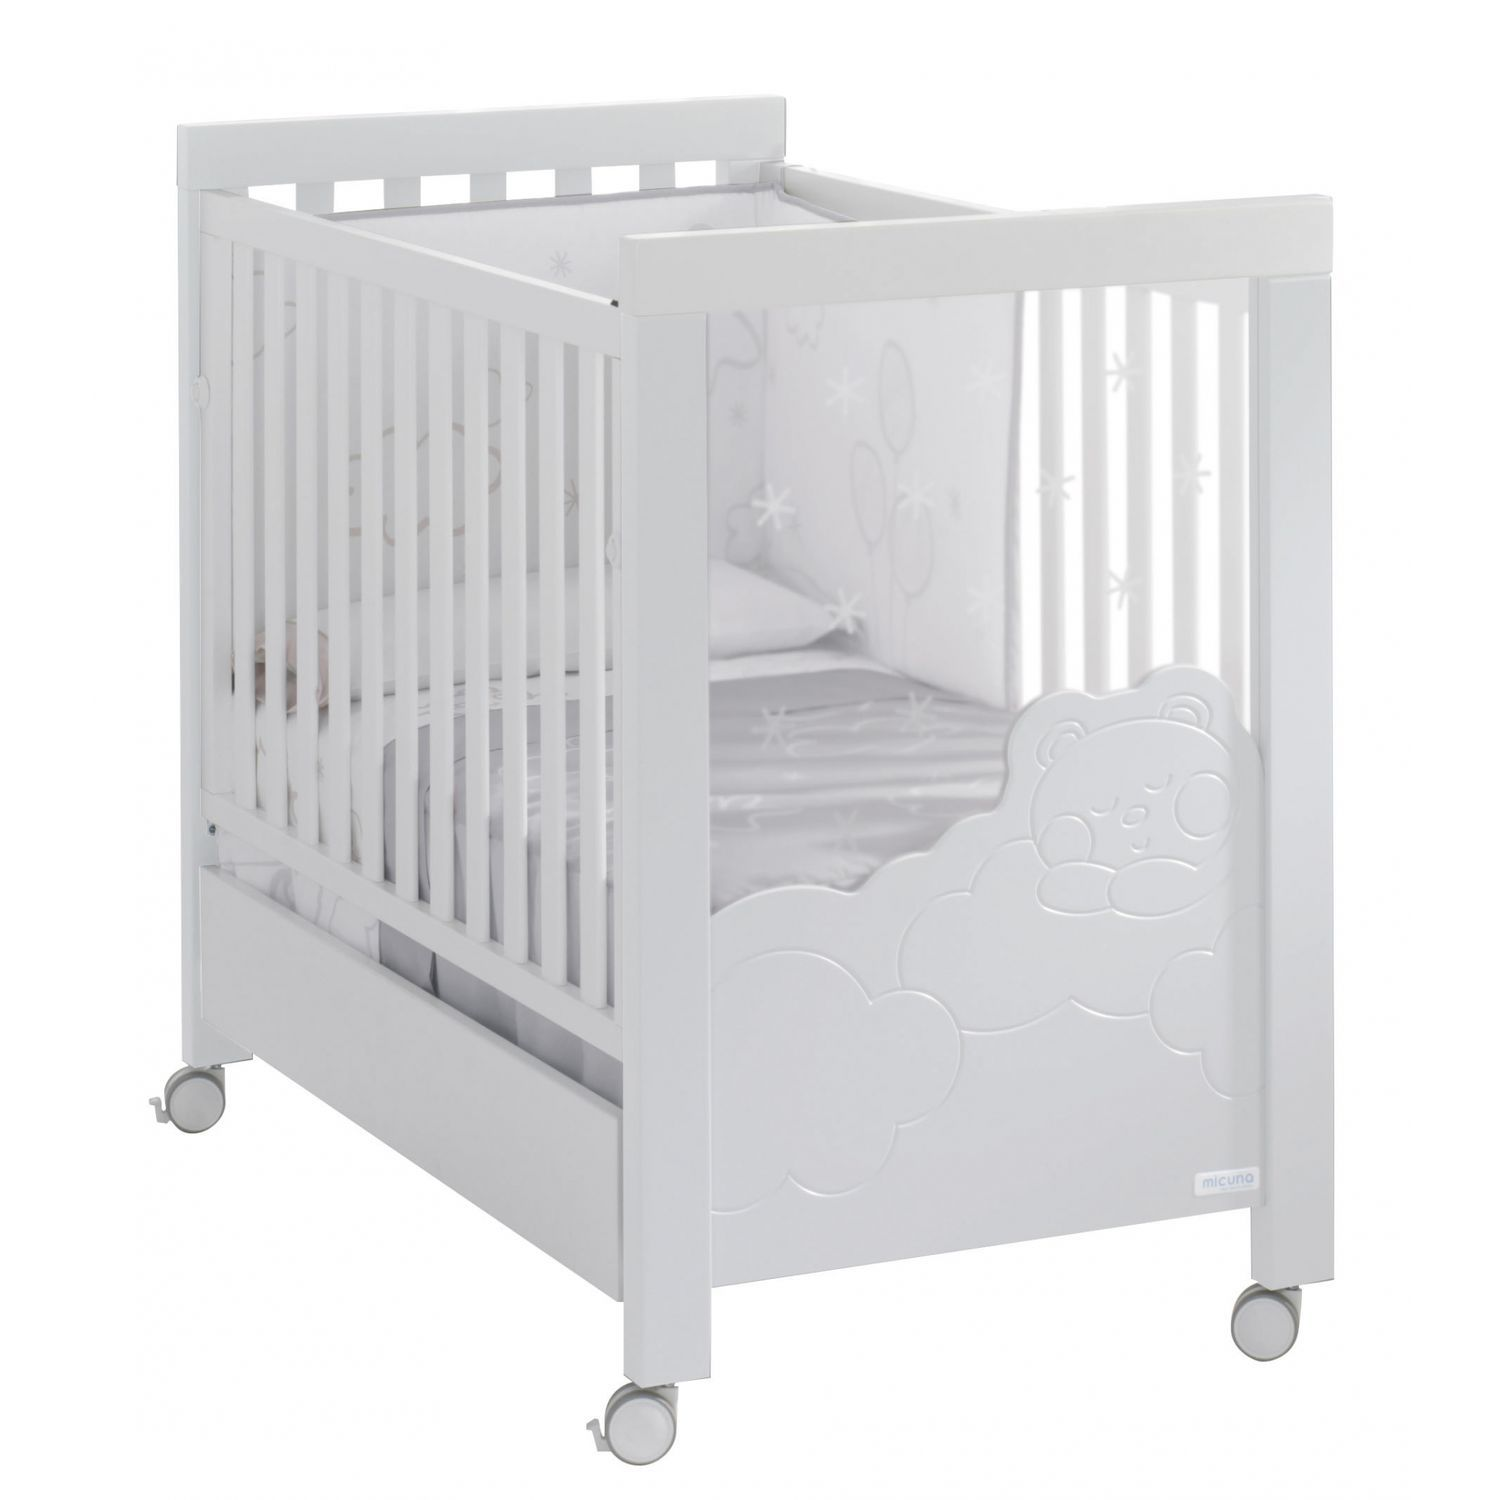 Baby s bedroom furniture set DOLCE LUCE micuna